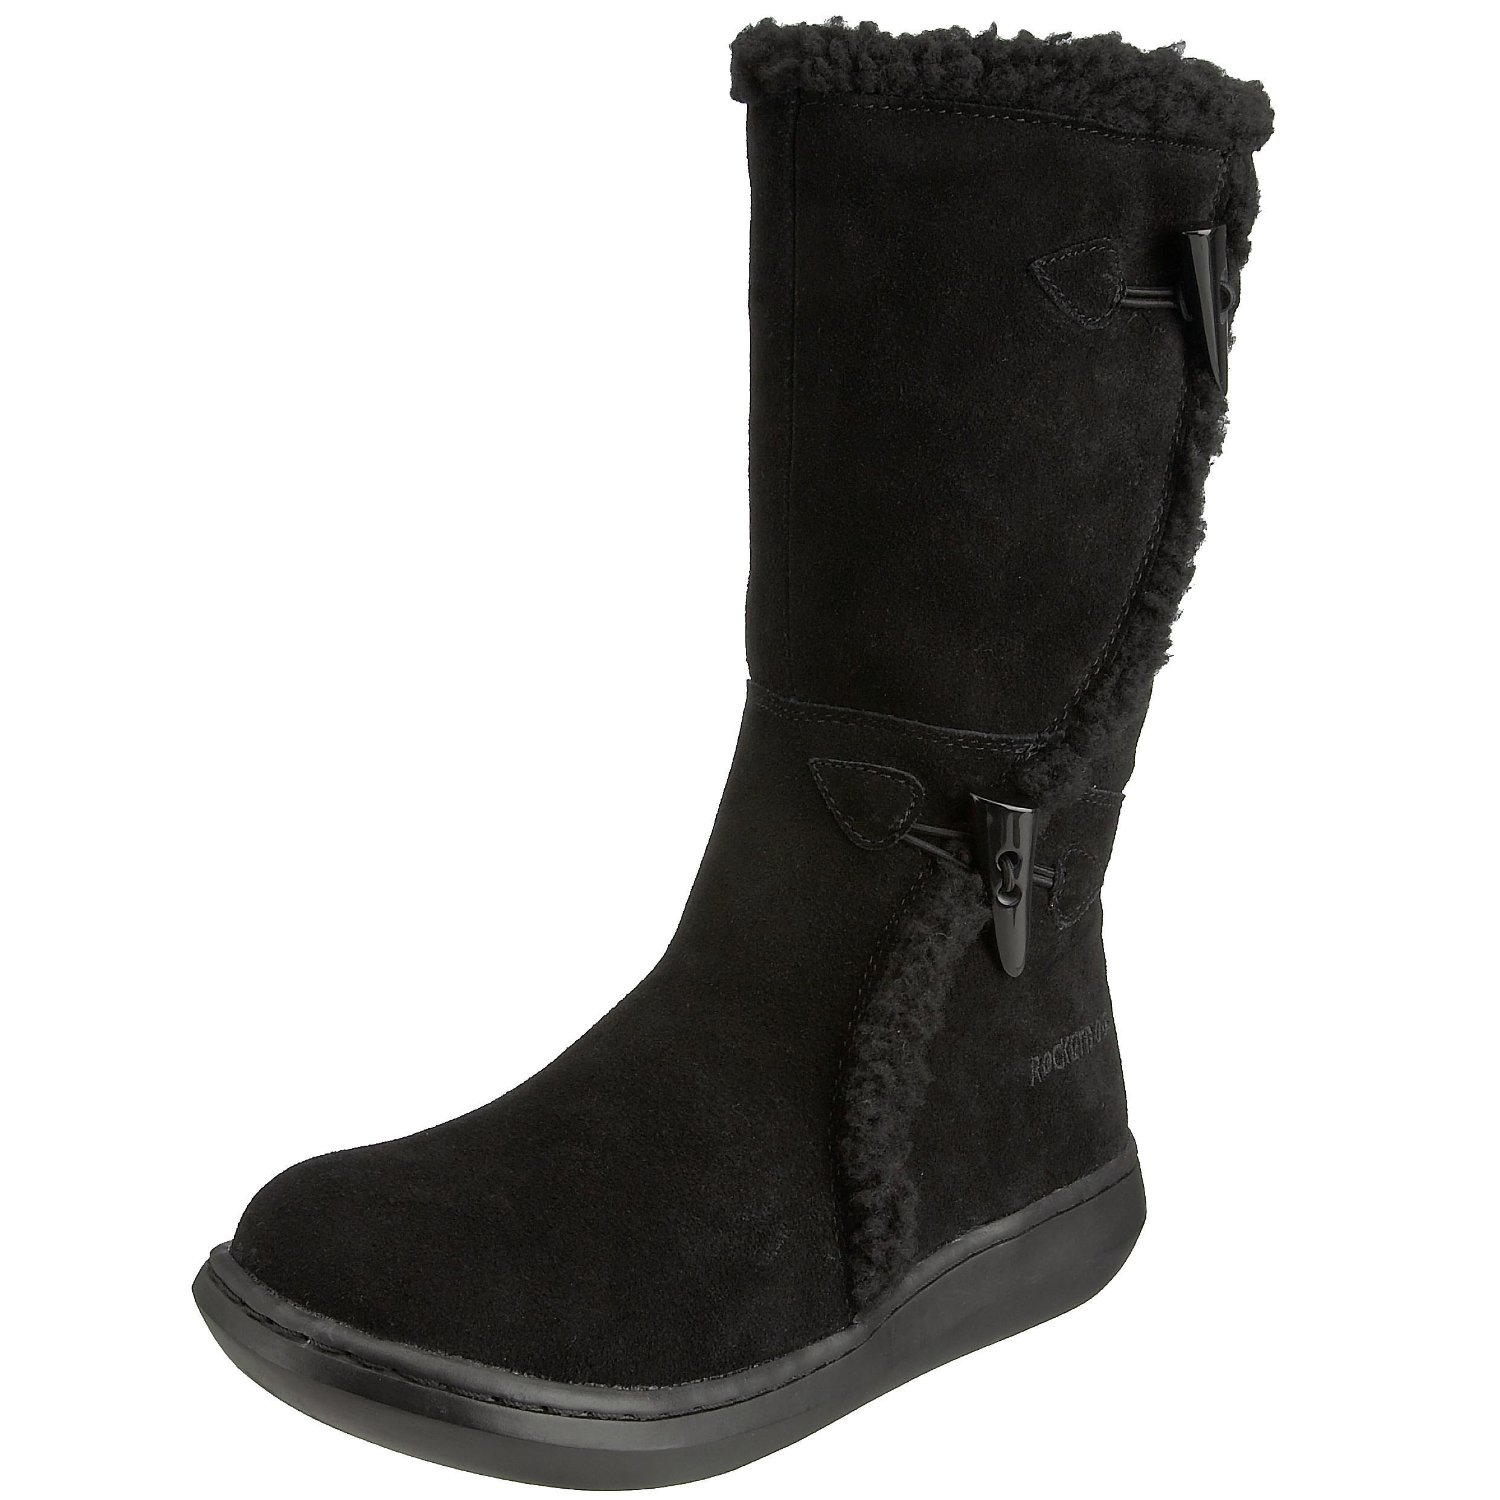 Rocket-Dog-Slope-Black-Suede-New-Womens-Hi-Winter-Shoes-Boots